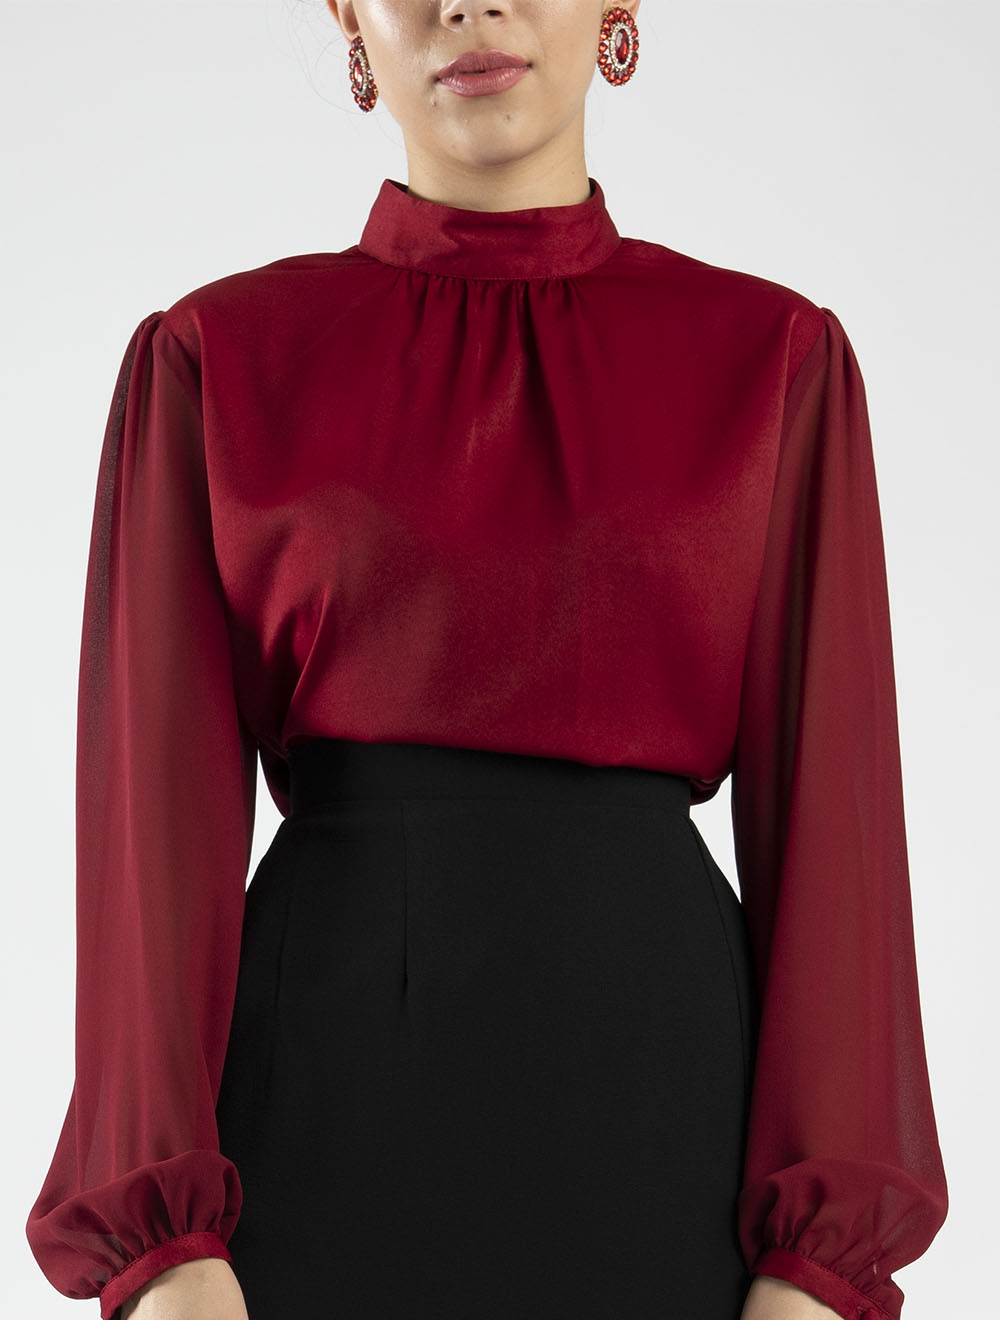 Gathered Neck Top – Front